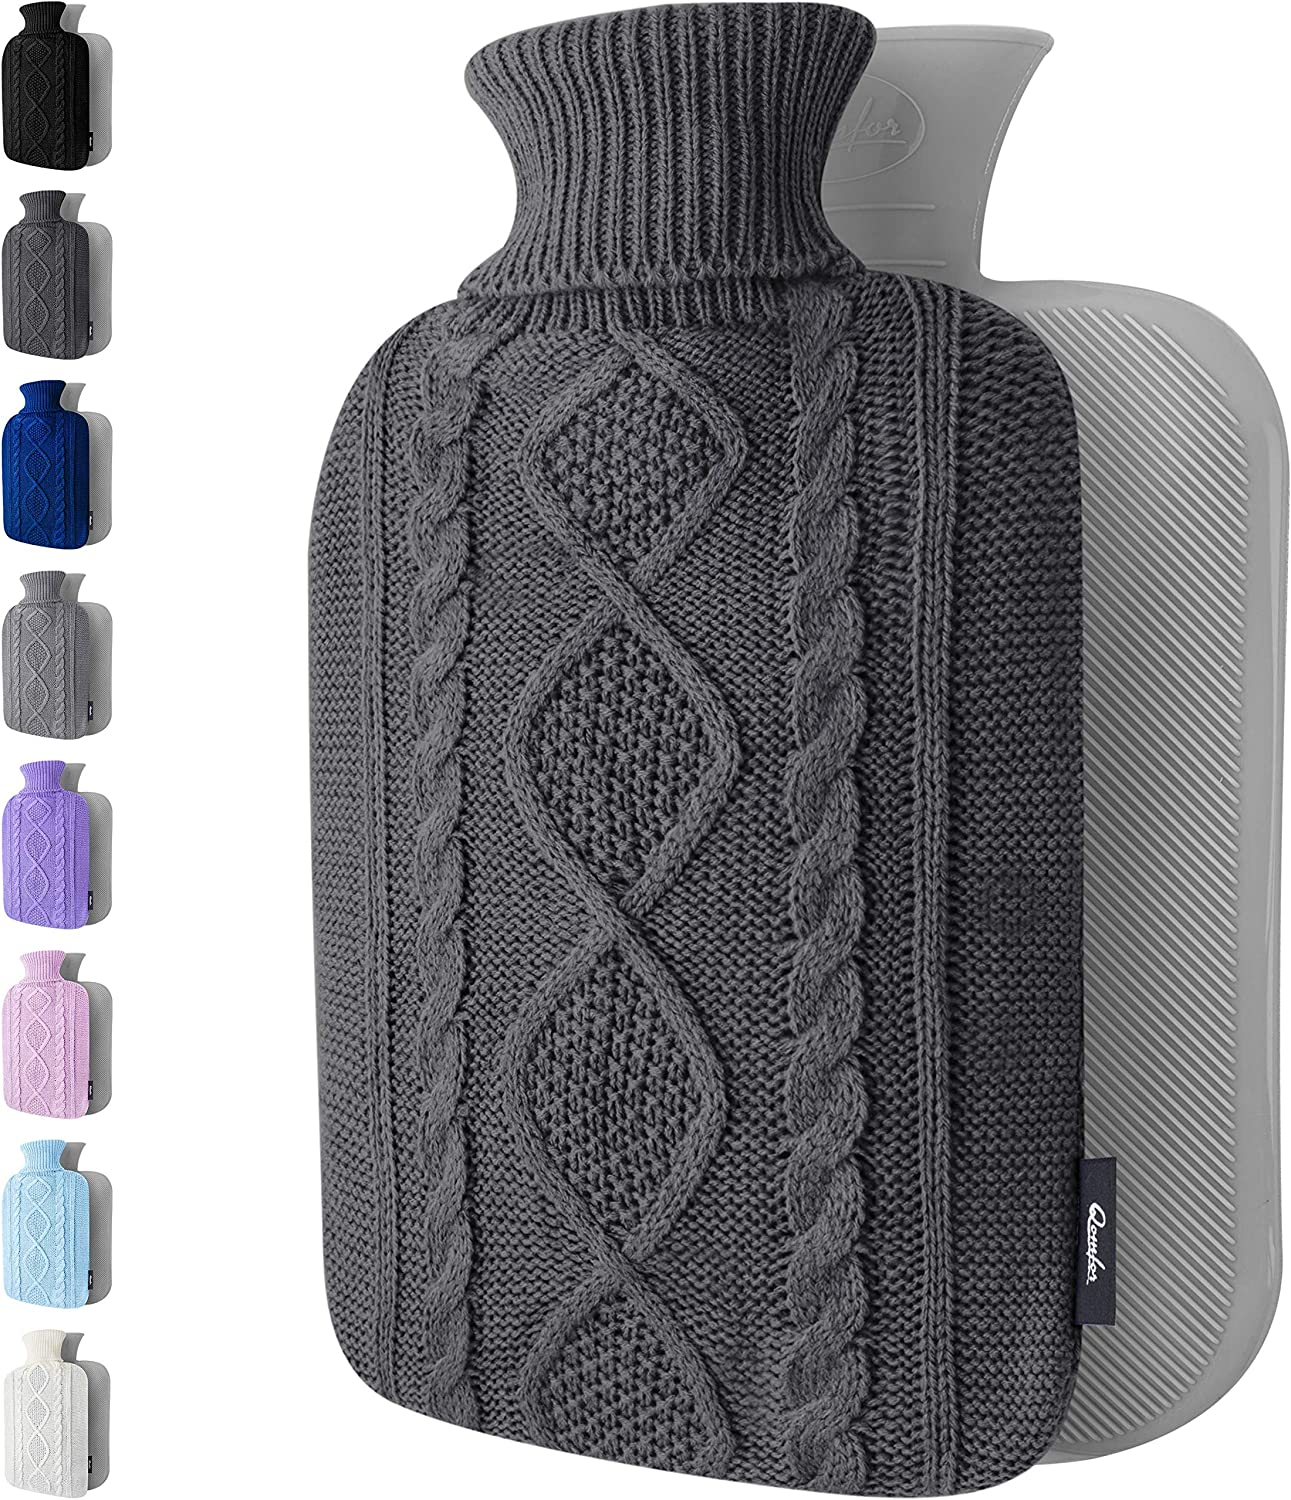 Hot Water Bottle with Cover - 1.8L Large - Premium Hot Water Bag with Knitted Sweater Cover - Great for Cramps, Pain Relief & Cozy Nights - Water Heating Pad - Feet & Bed Warmer for Adults (Dark Gray)